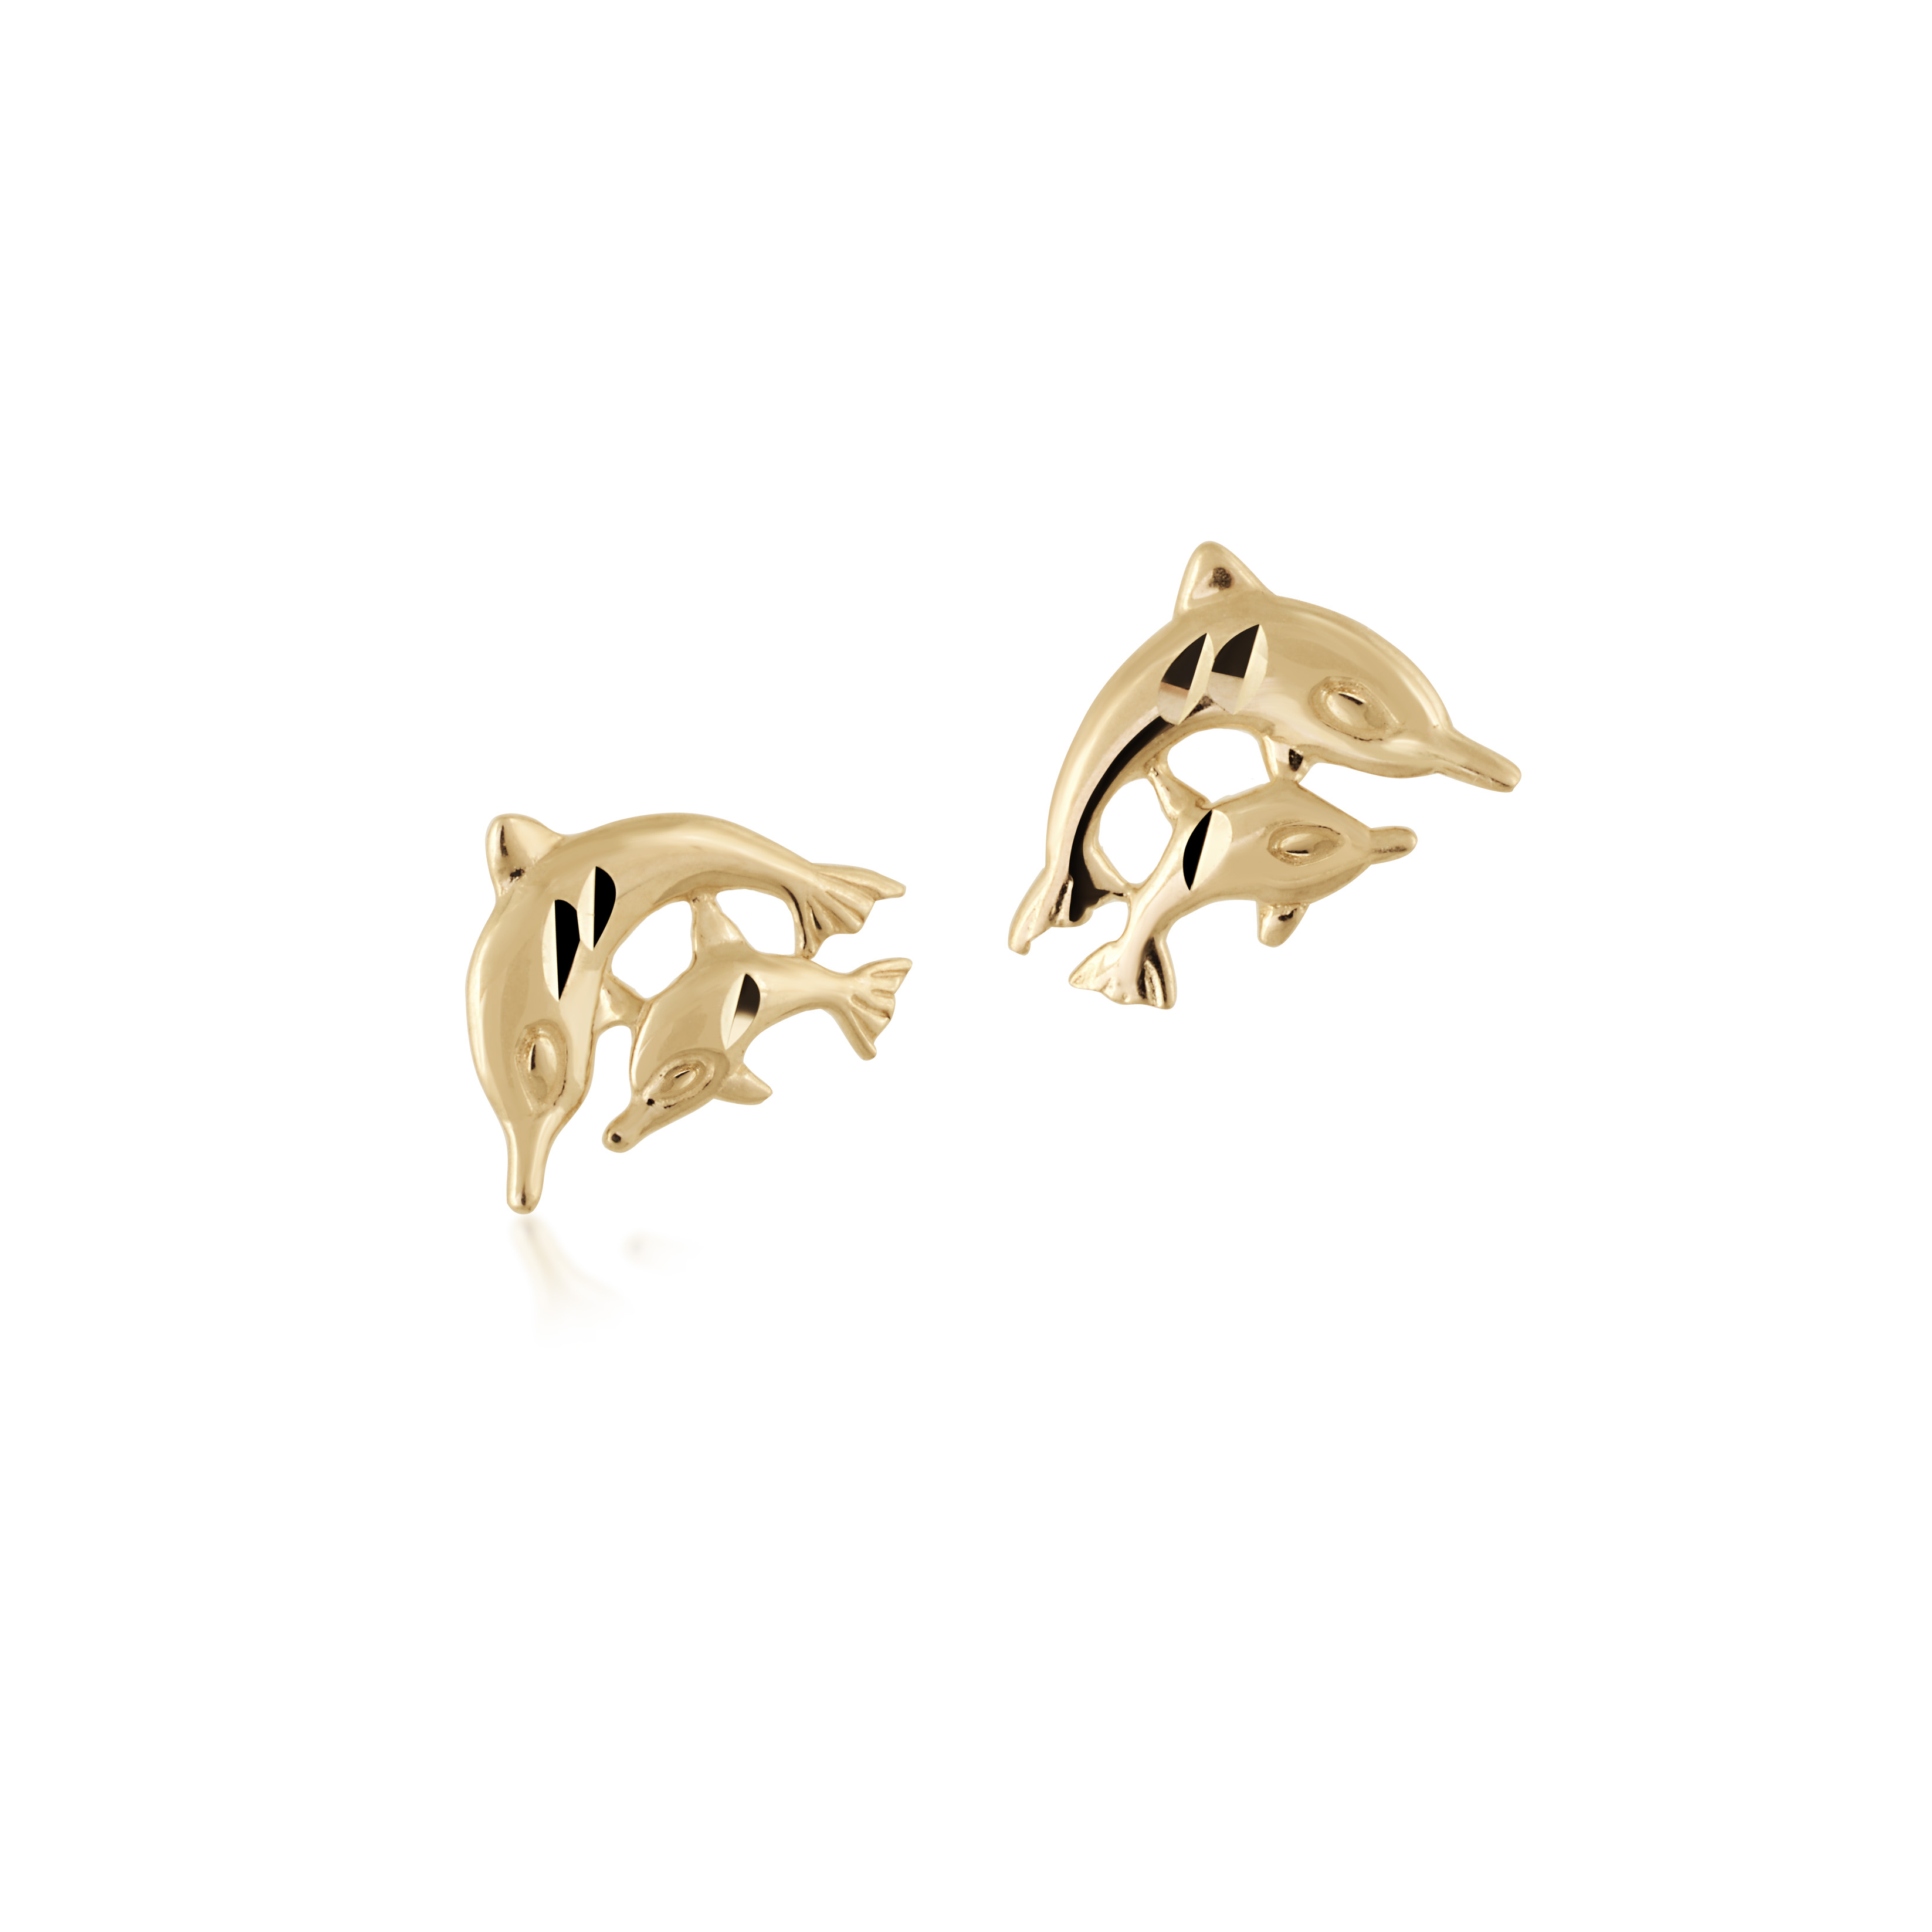 Dolphin stud earrings for children - 14K yellow Gold